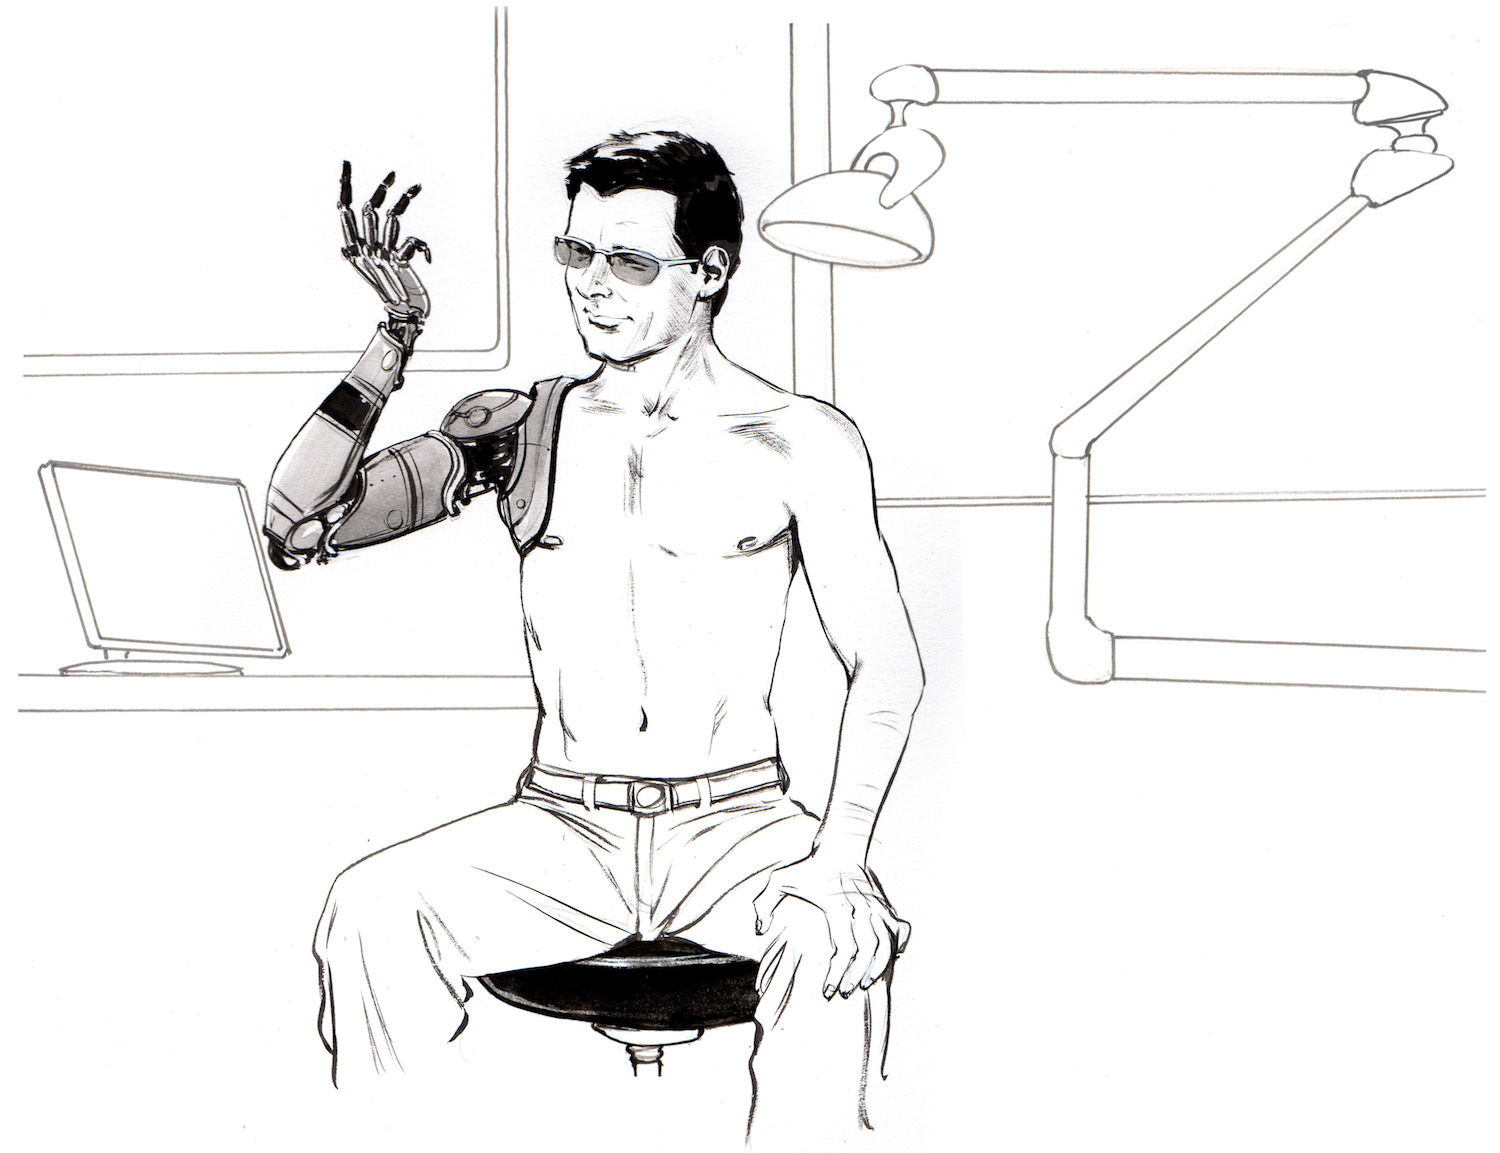 experiment: advanced neuro-prosthetics-take someone's free will, Muscles